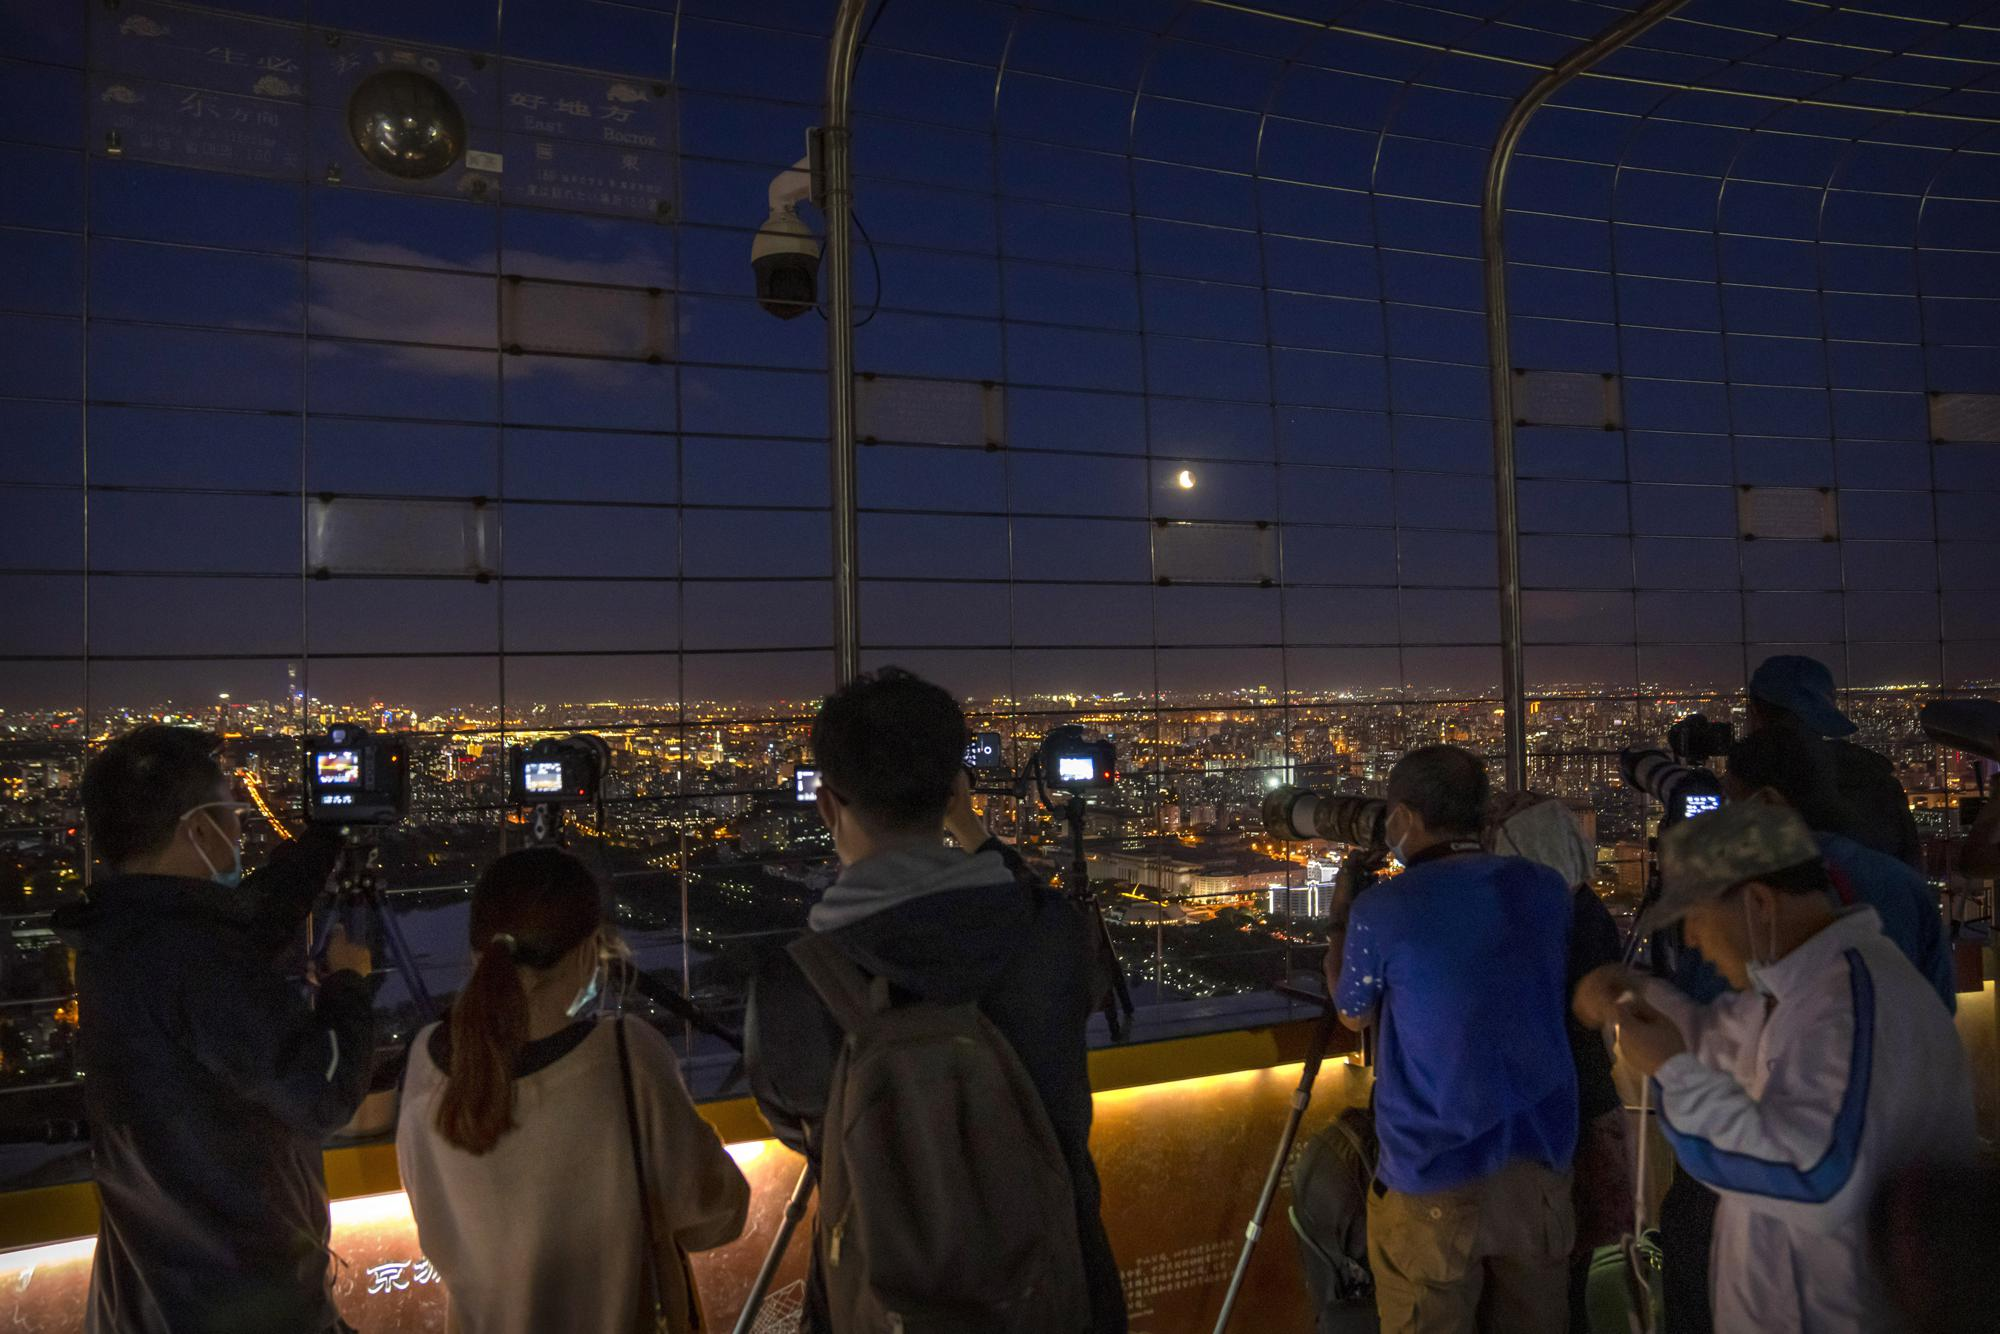 Photographers take photos of a lunar eclipse at the Central TV Tower in Beijing, Wednesday, May 26, 2021. (AP Photo/Mark Schiefelbein)